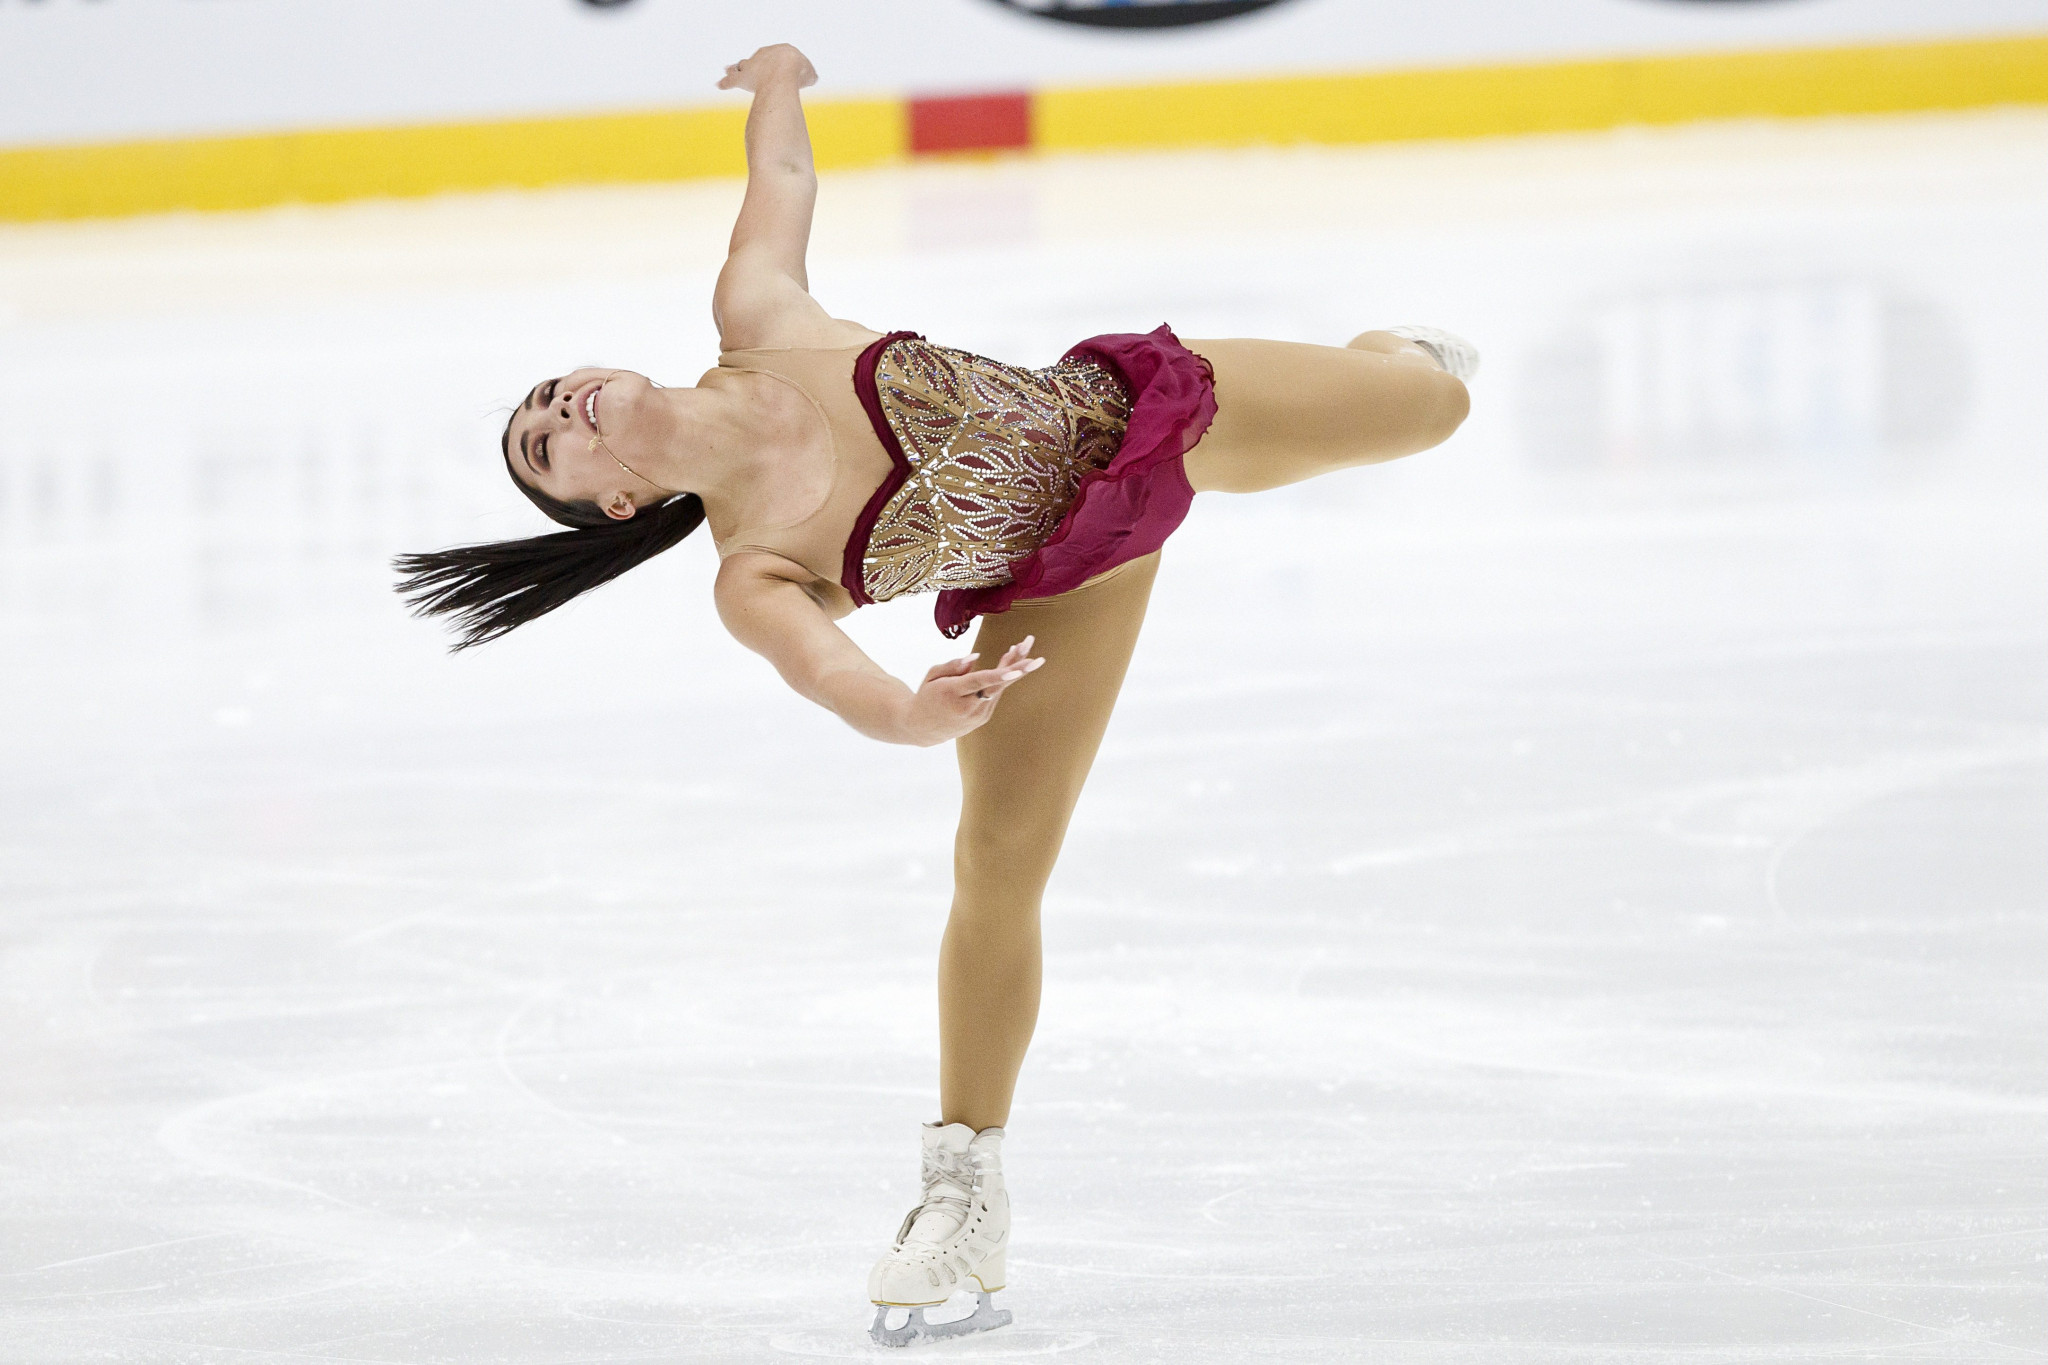 Canada's World Championships bronze medallist Gabrielle Daleman has not competed on the circuit so far this season but has entered the Audi Cup of China in Beijing ©Getty Images